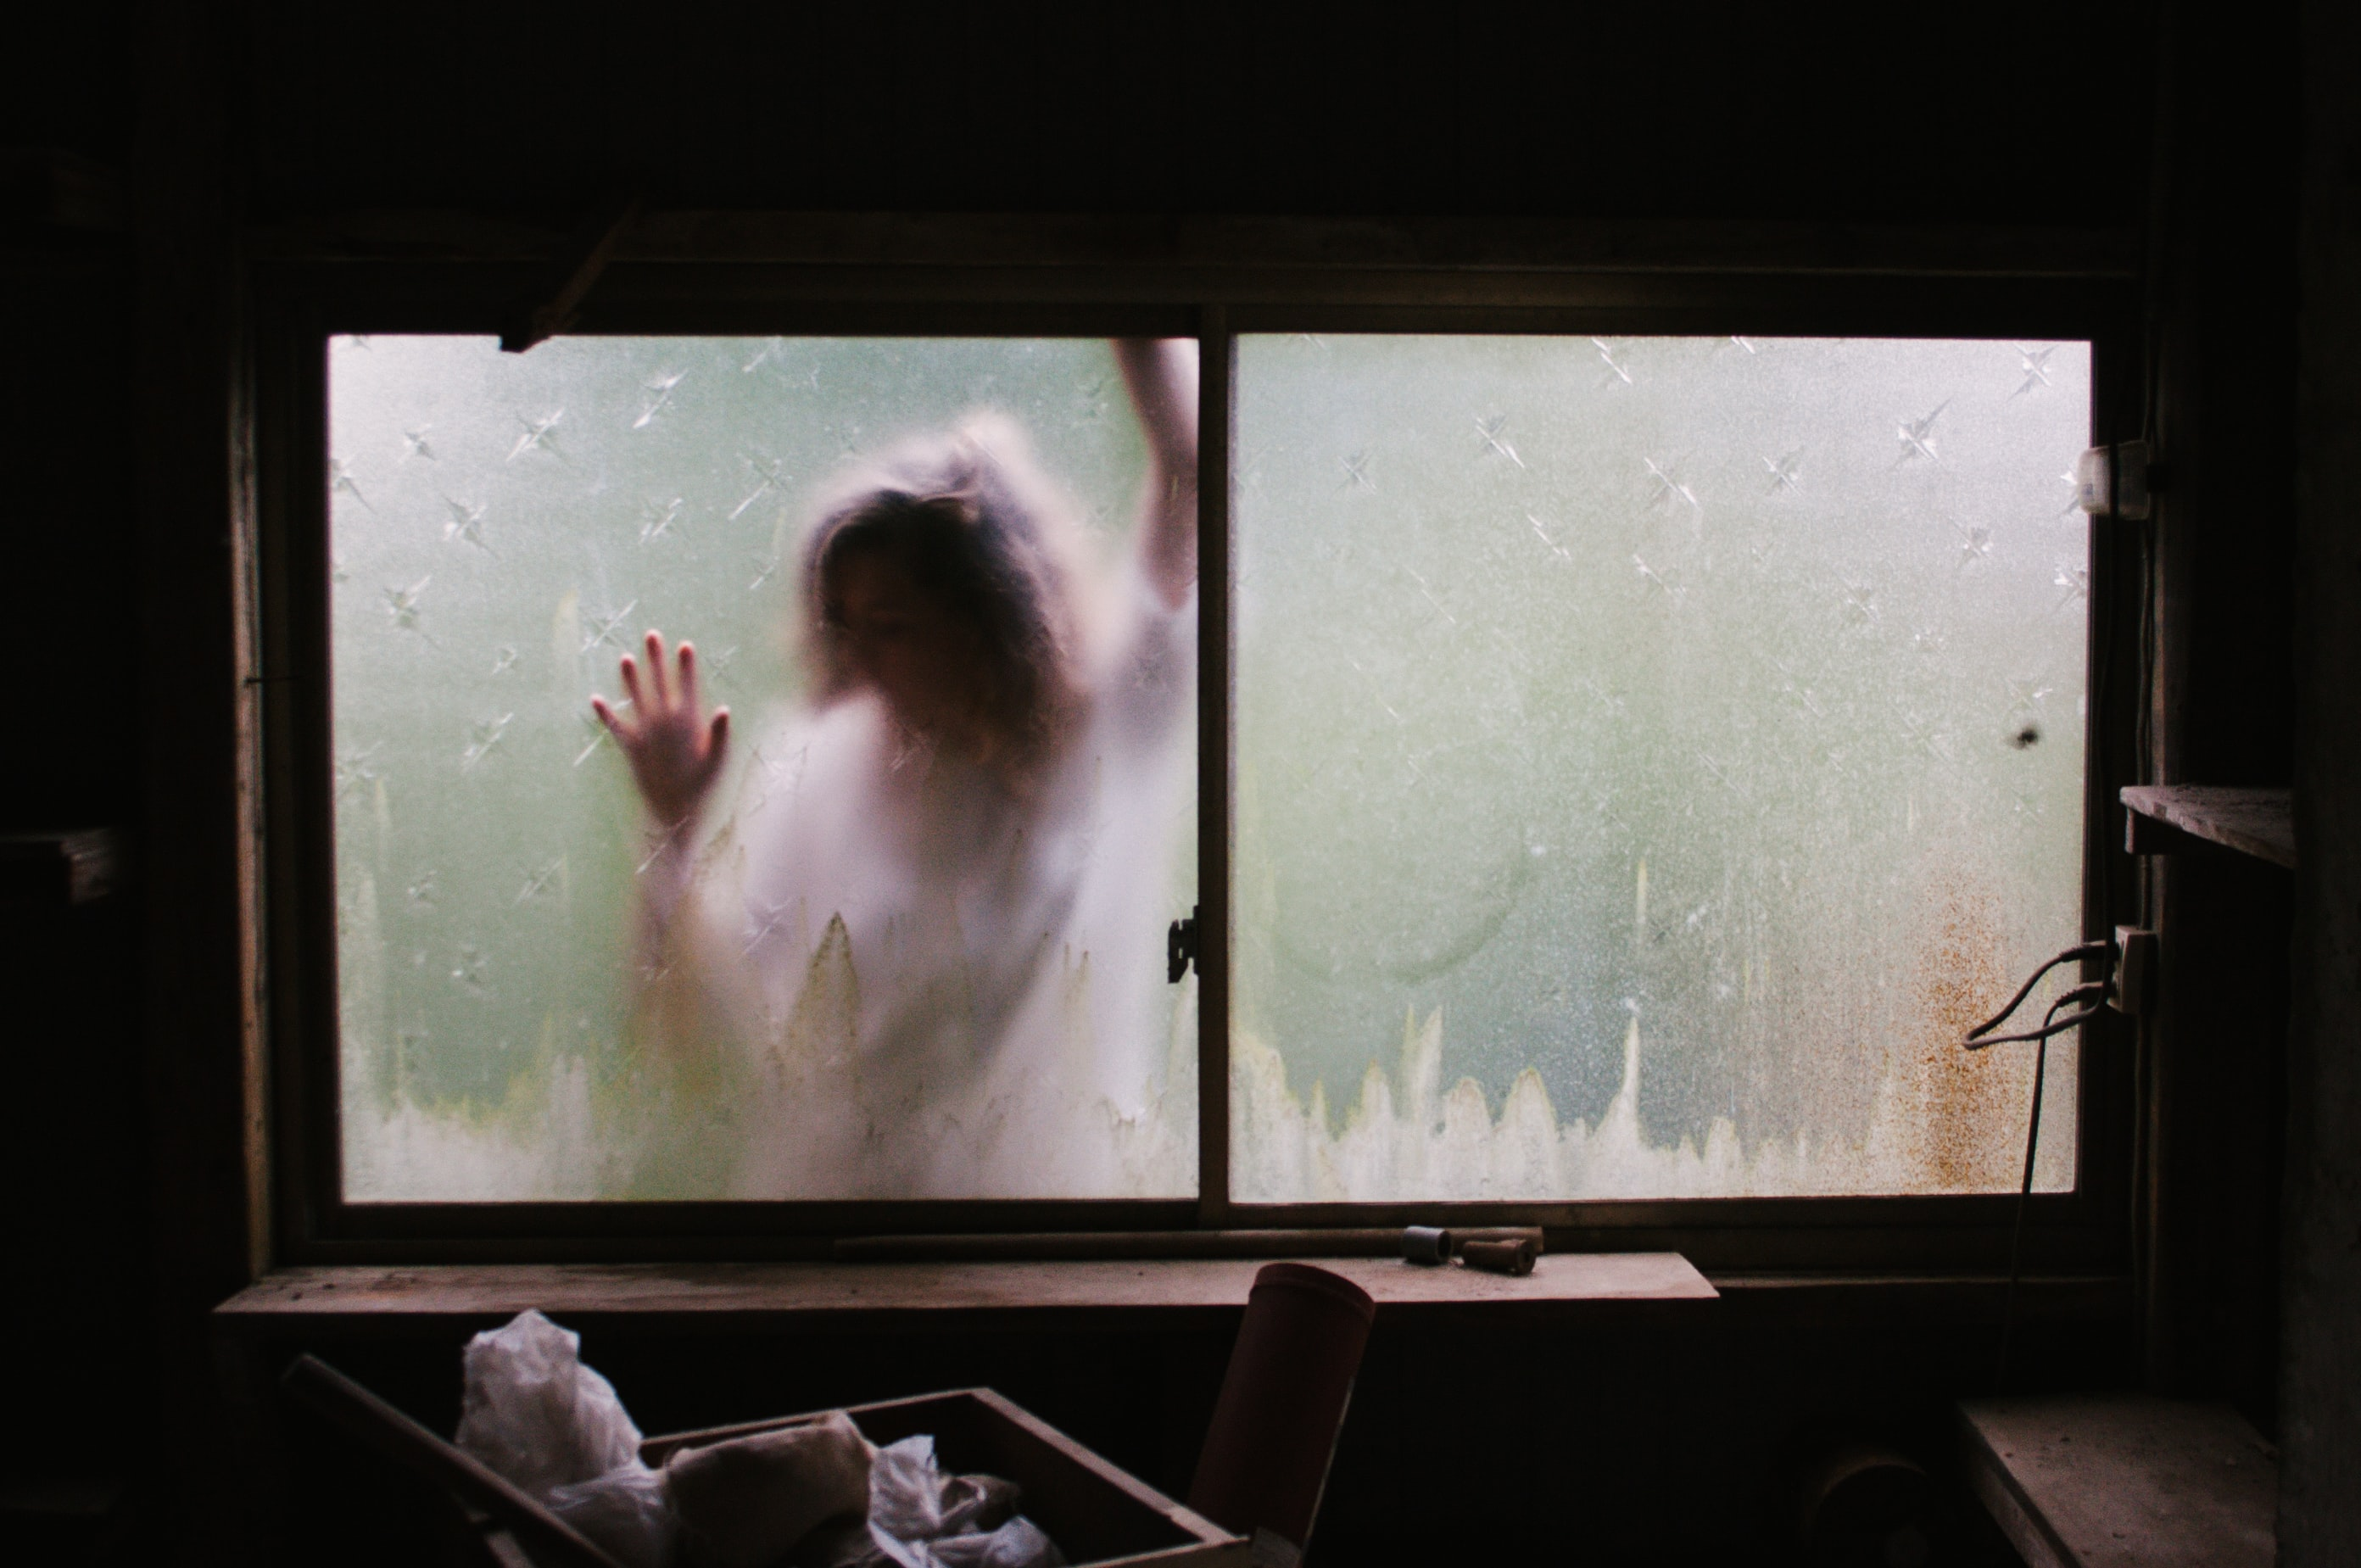 Scary woman wearing white trapped in a house with her hands on the glass.